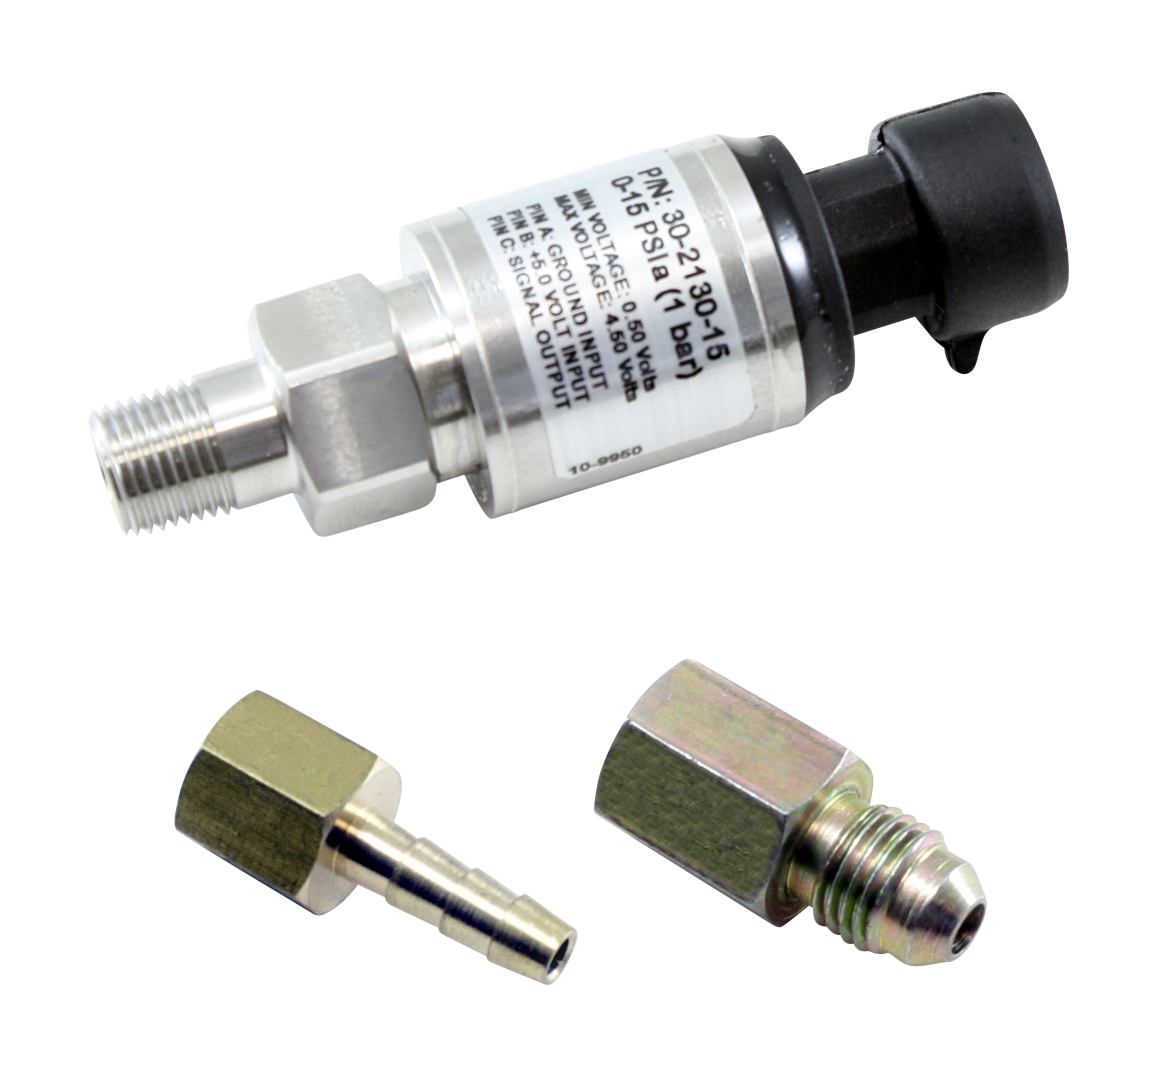 "AEM 15 PSIa or 1 Bar Stainless Sensor Kit. Stainless Steel Sensor Body. 1/8"" NPT Male Thread. Includes: 15 PSIa or 1 Bar Stainless Sensor, Connector, Pins, 1/8"" NPT to -4 Adapter & 1/8"" NPT to 3/16"" Barb Adapter"